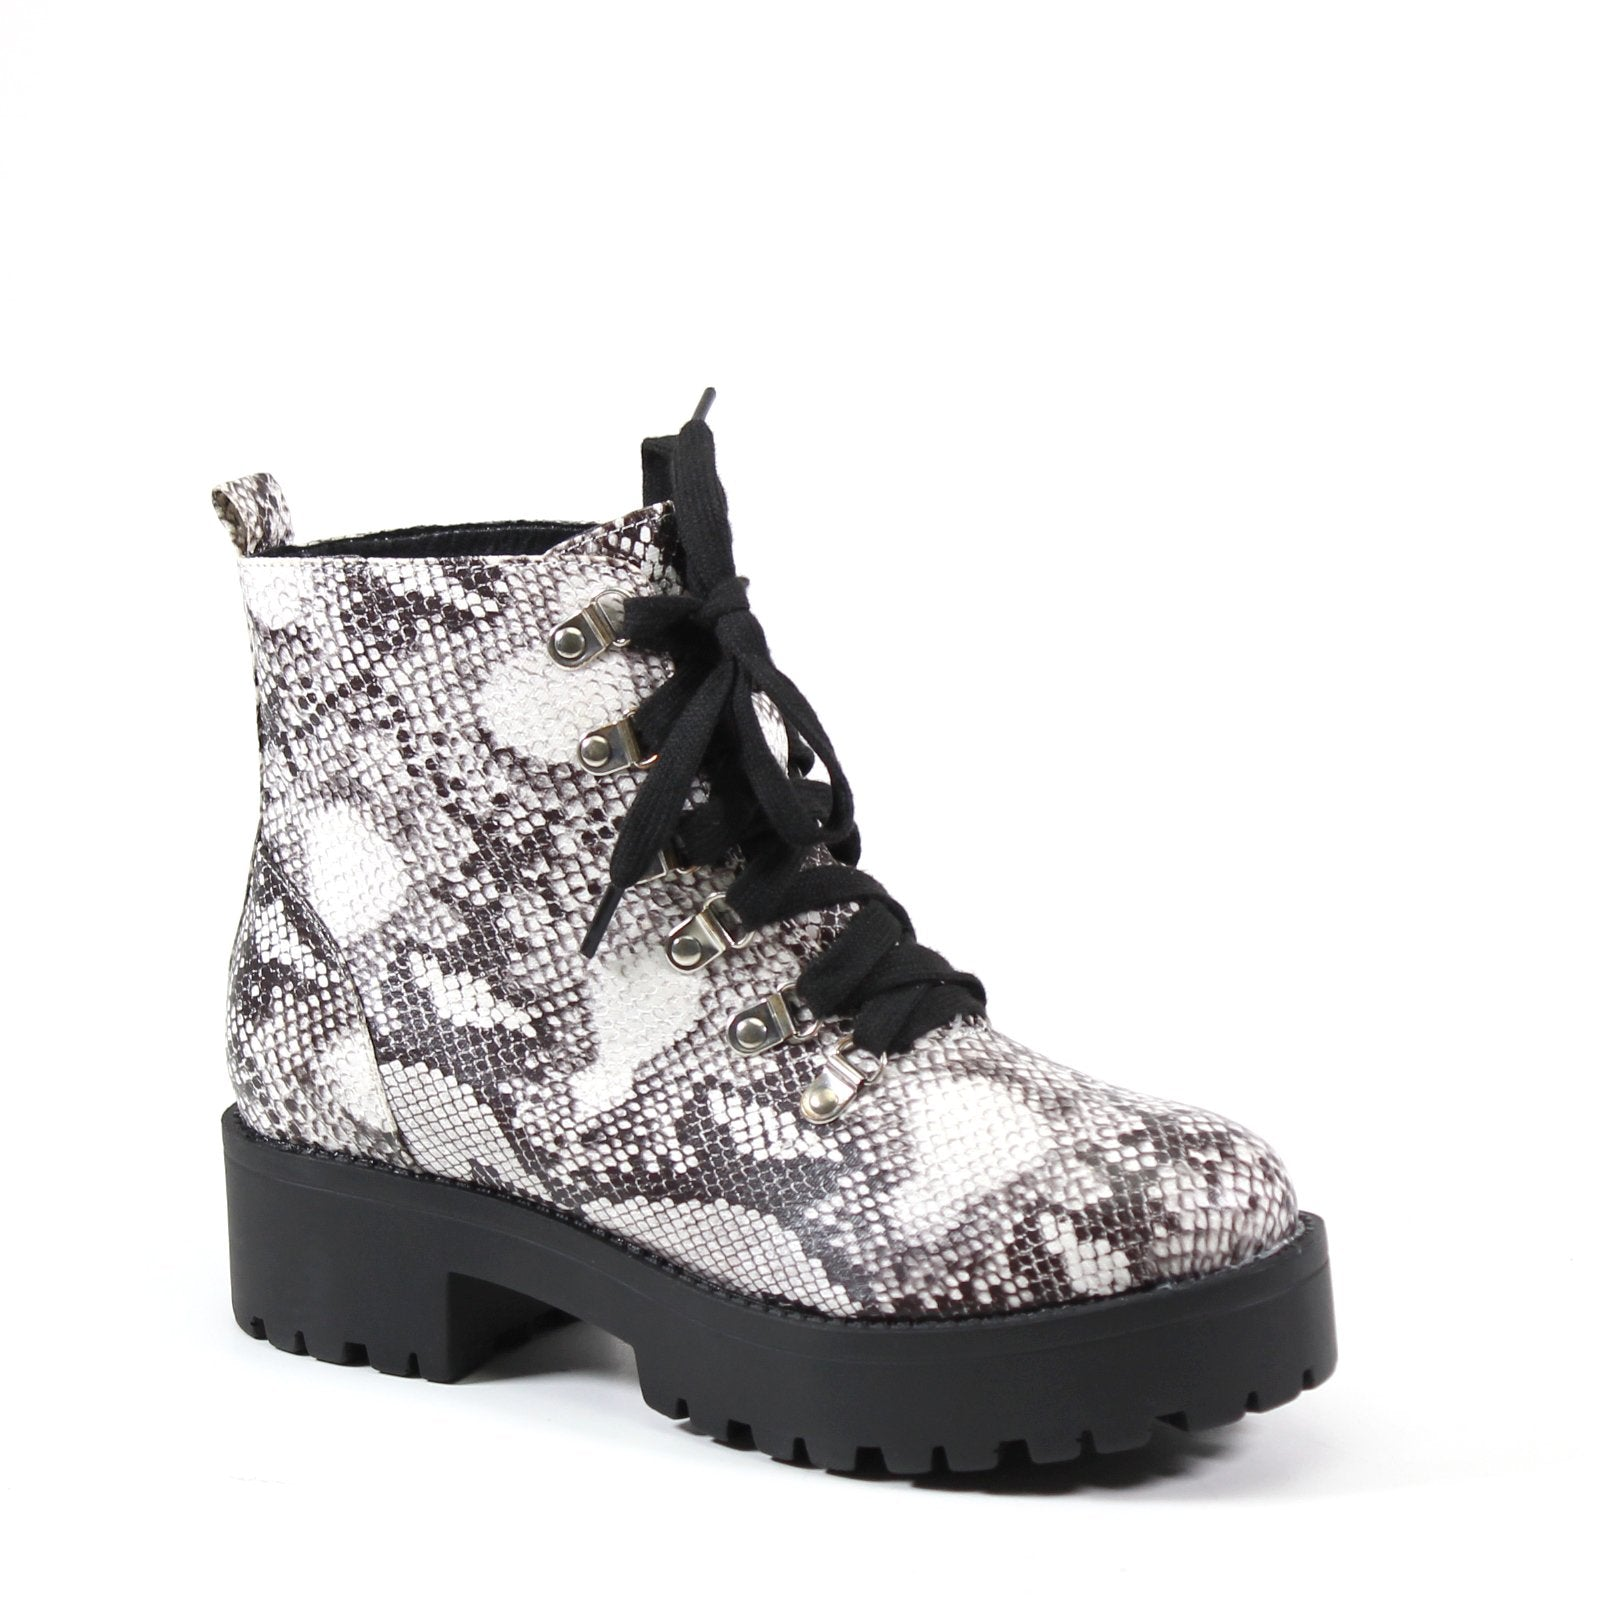 A vegan leather croco print ankle boot with a buckle ornament ankle strap, low block heel and inside zip is so stylish and sleek.  A pointed toe design completes this polished European inspired style.